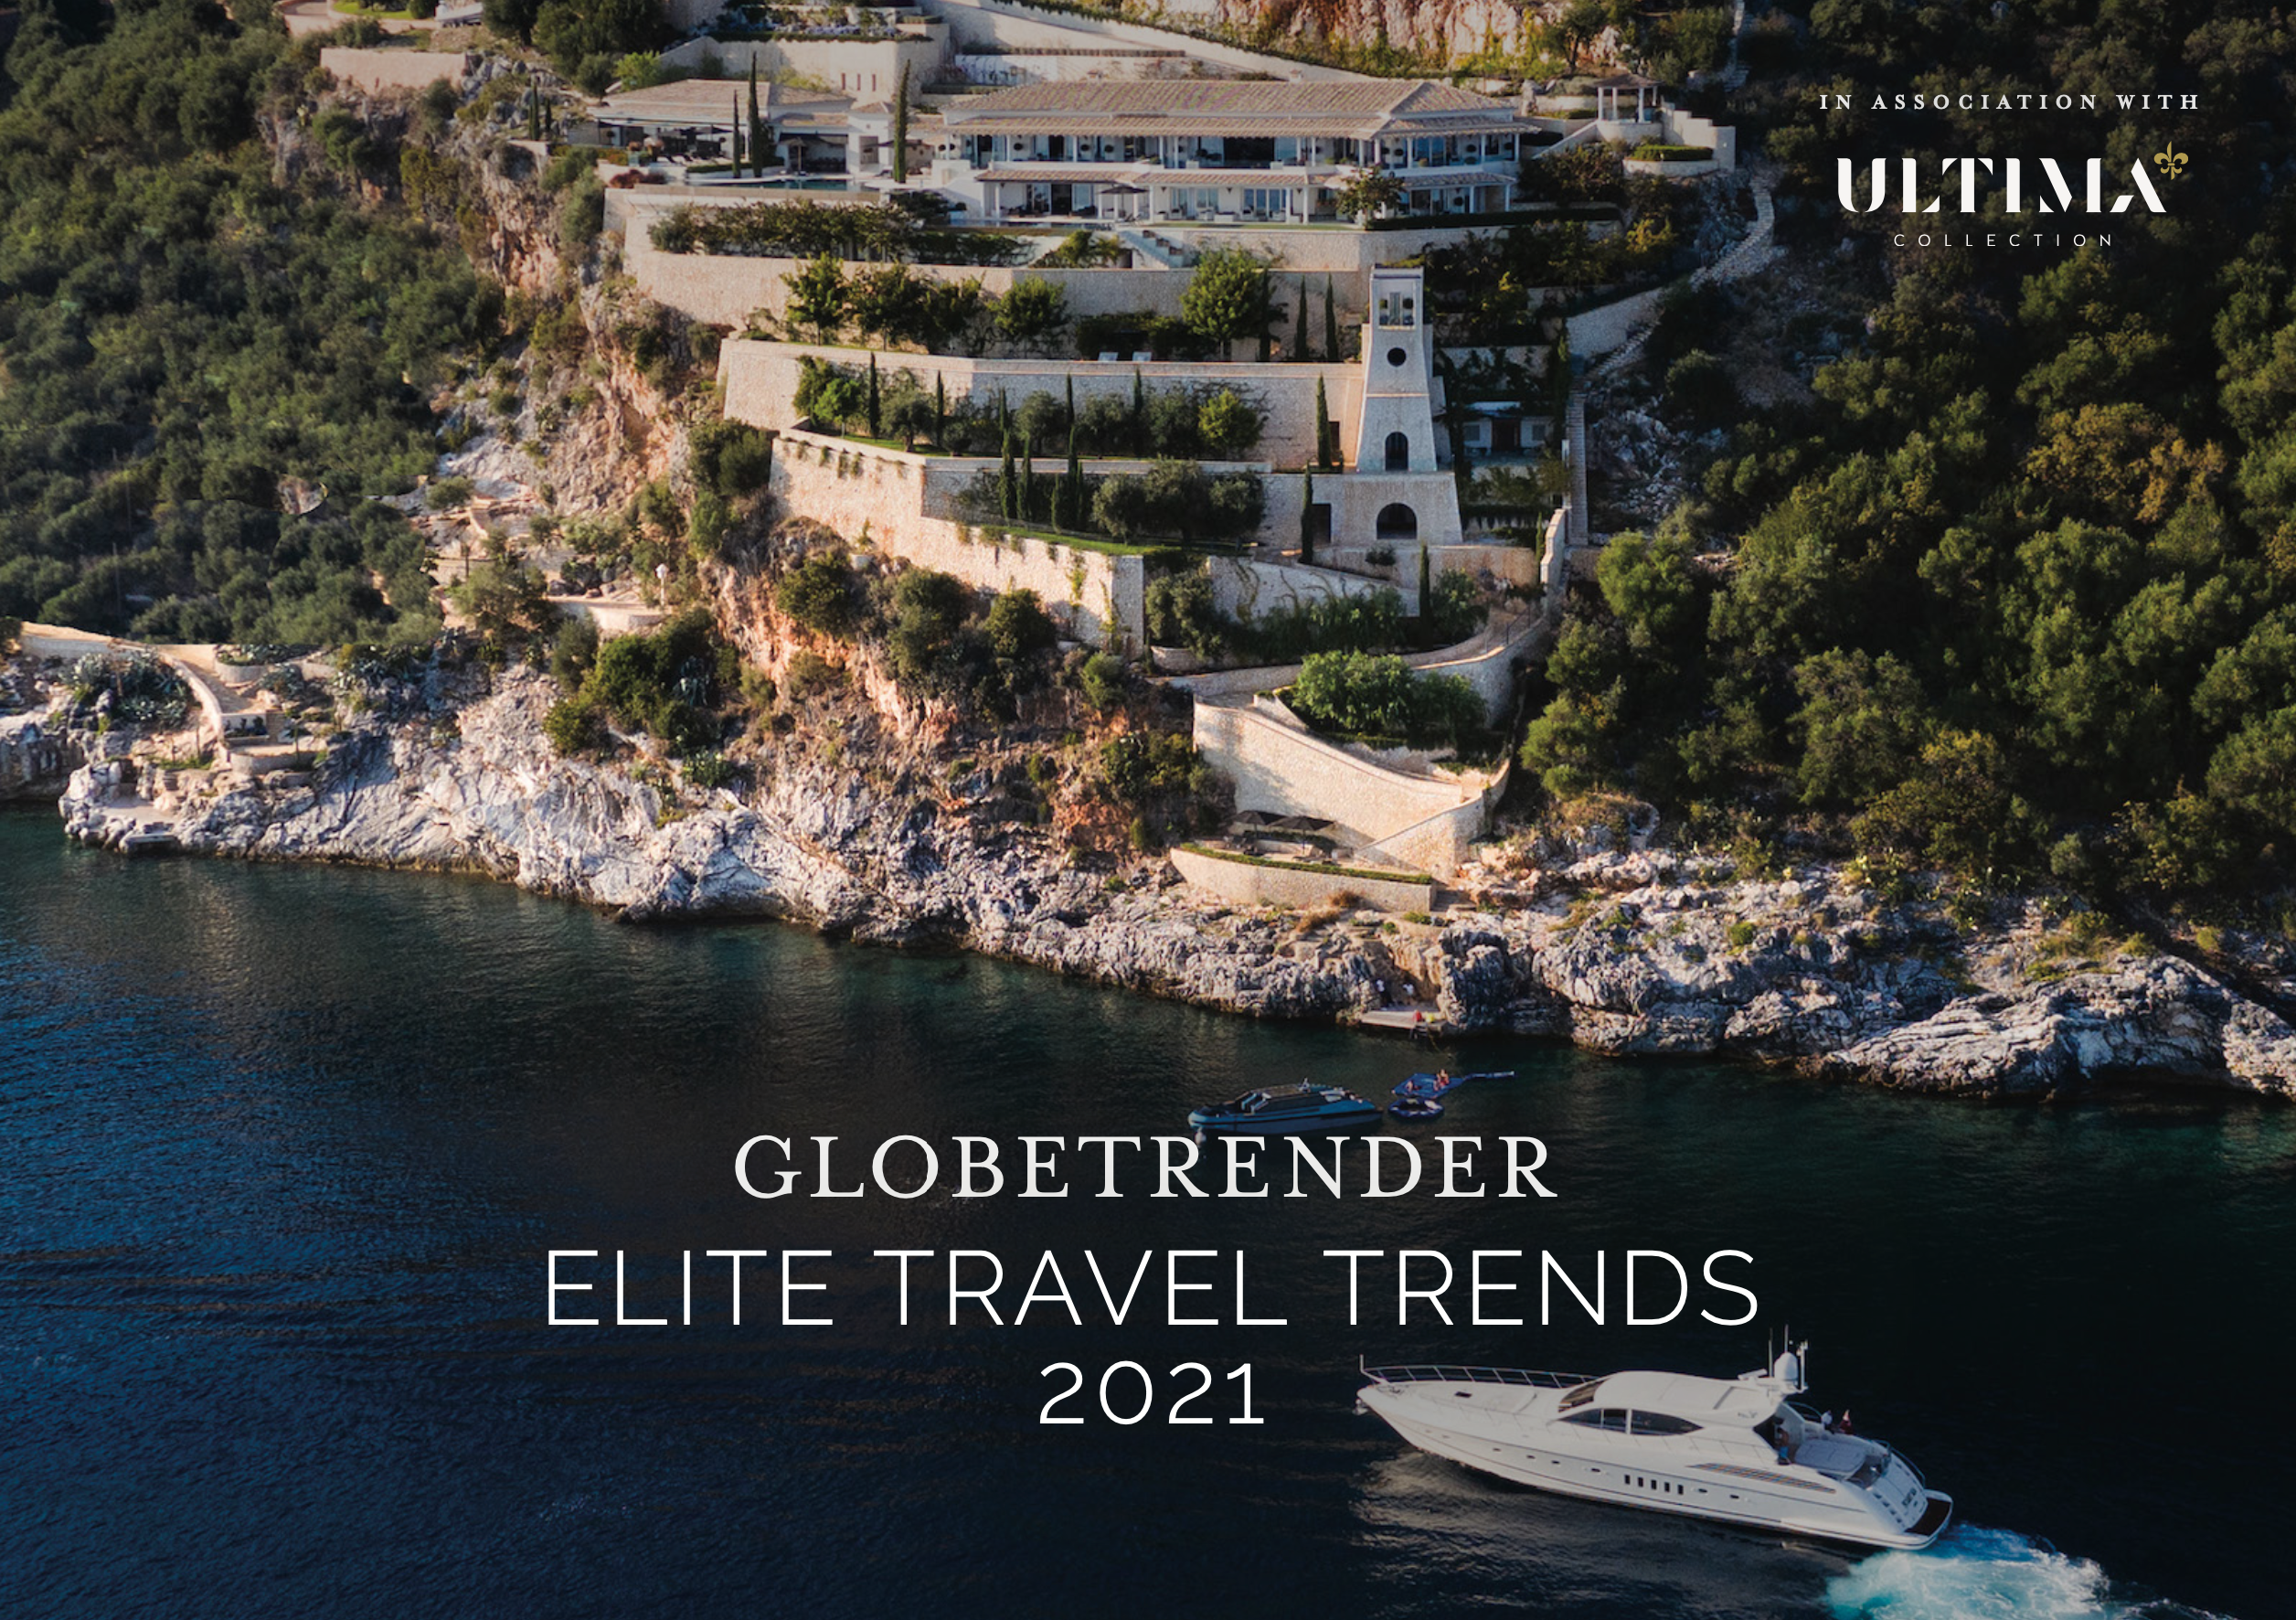 Elite Travel Trends 2021